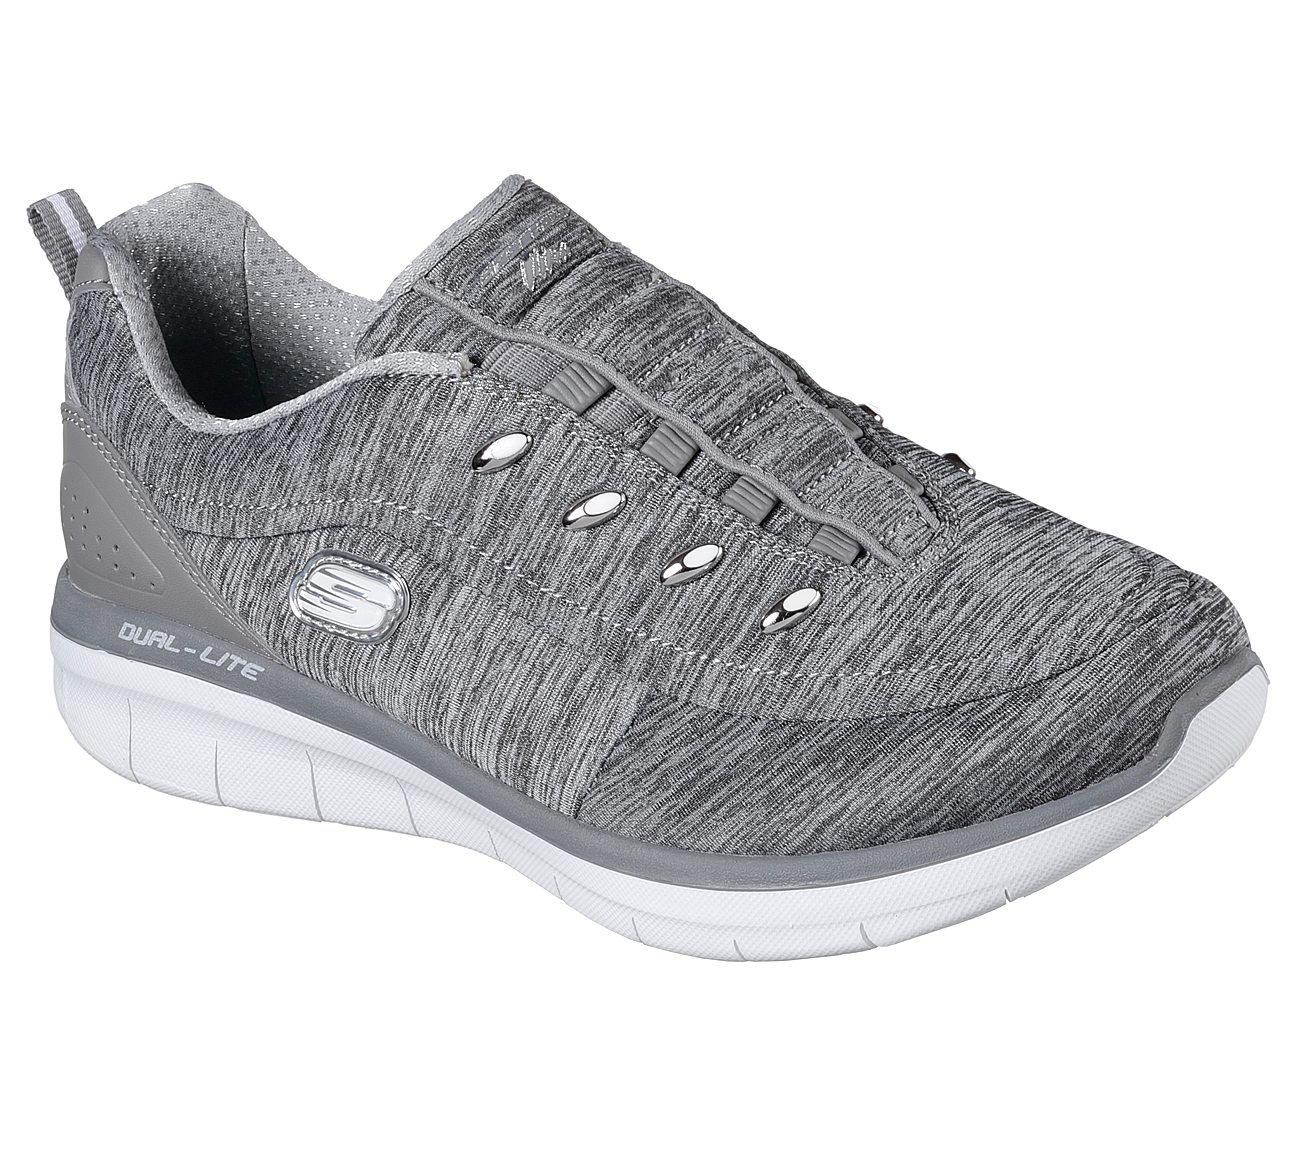 9d14fcd863aa Buy SKECHERS Synergy 2.0 - Scouted Sport Shoes only  42.00